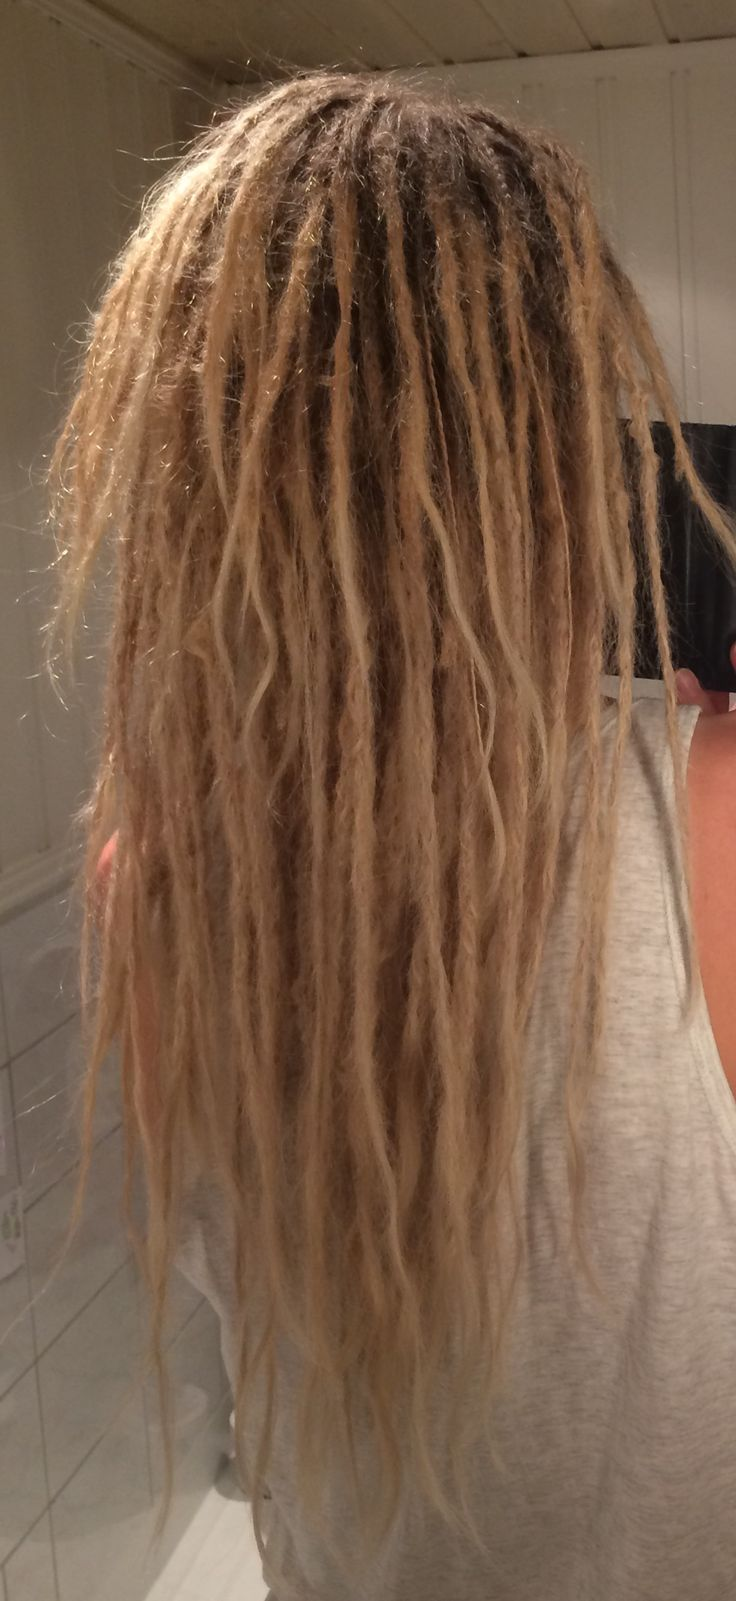 Babydreads